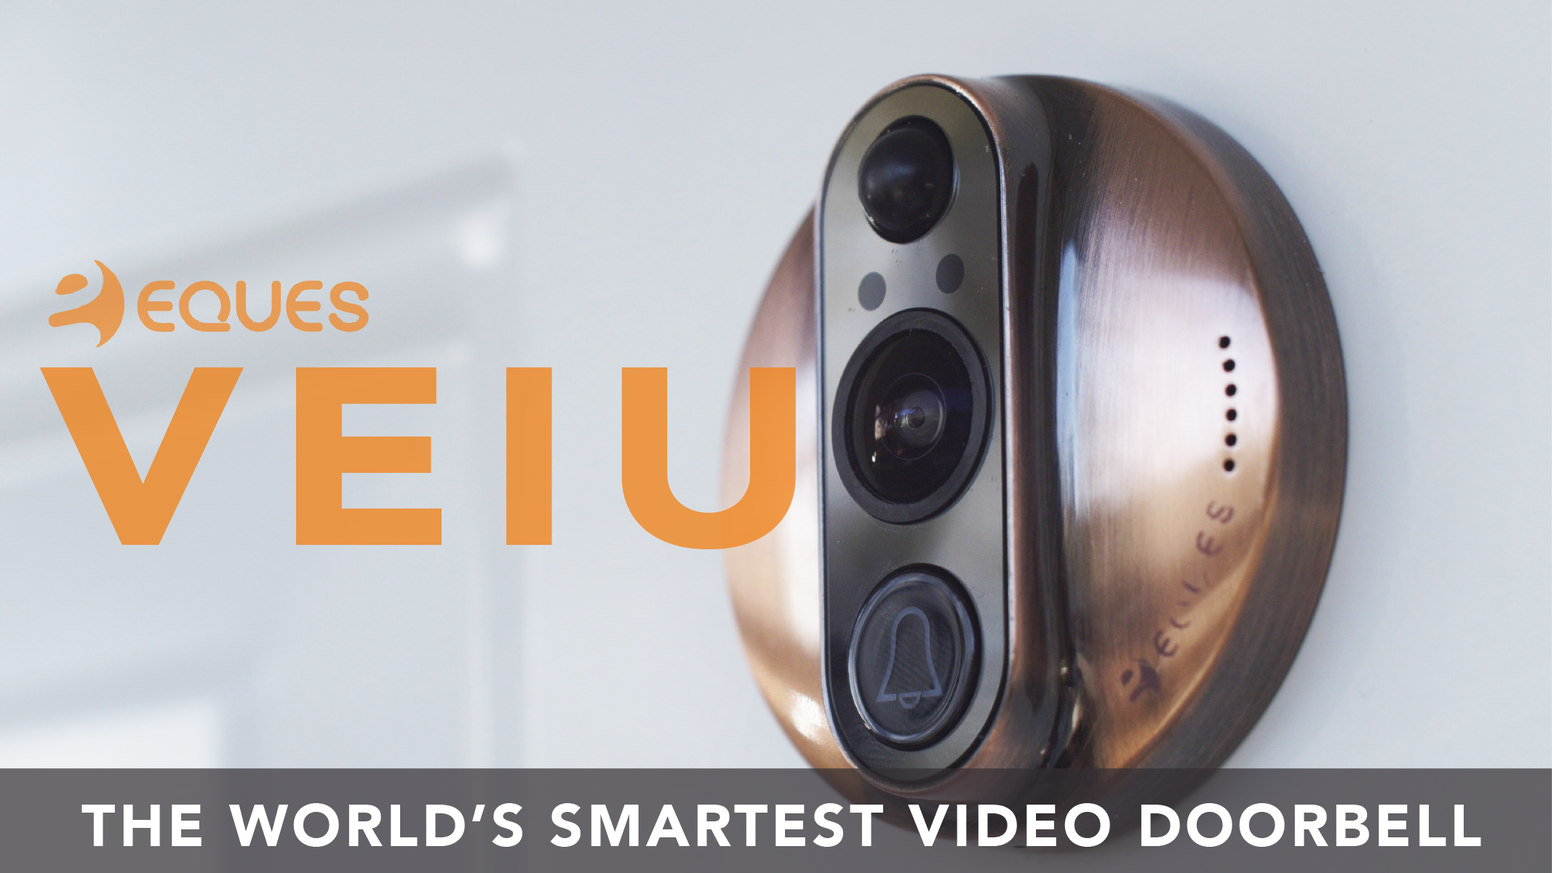 The Worlds Smartest Doorbell Veiu By Eques Faq Kickstarter Wireless Controlled Electronics Project Protect Your Home From Anywhere With Video